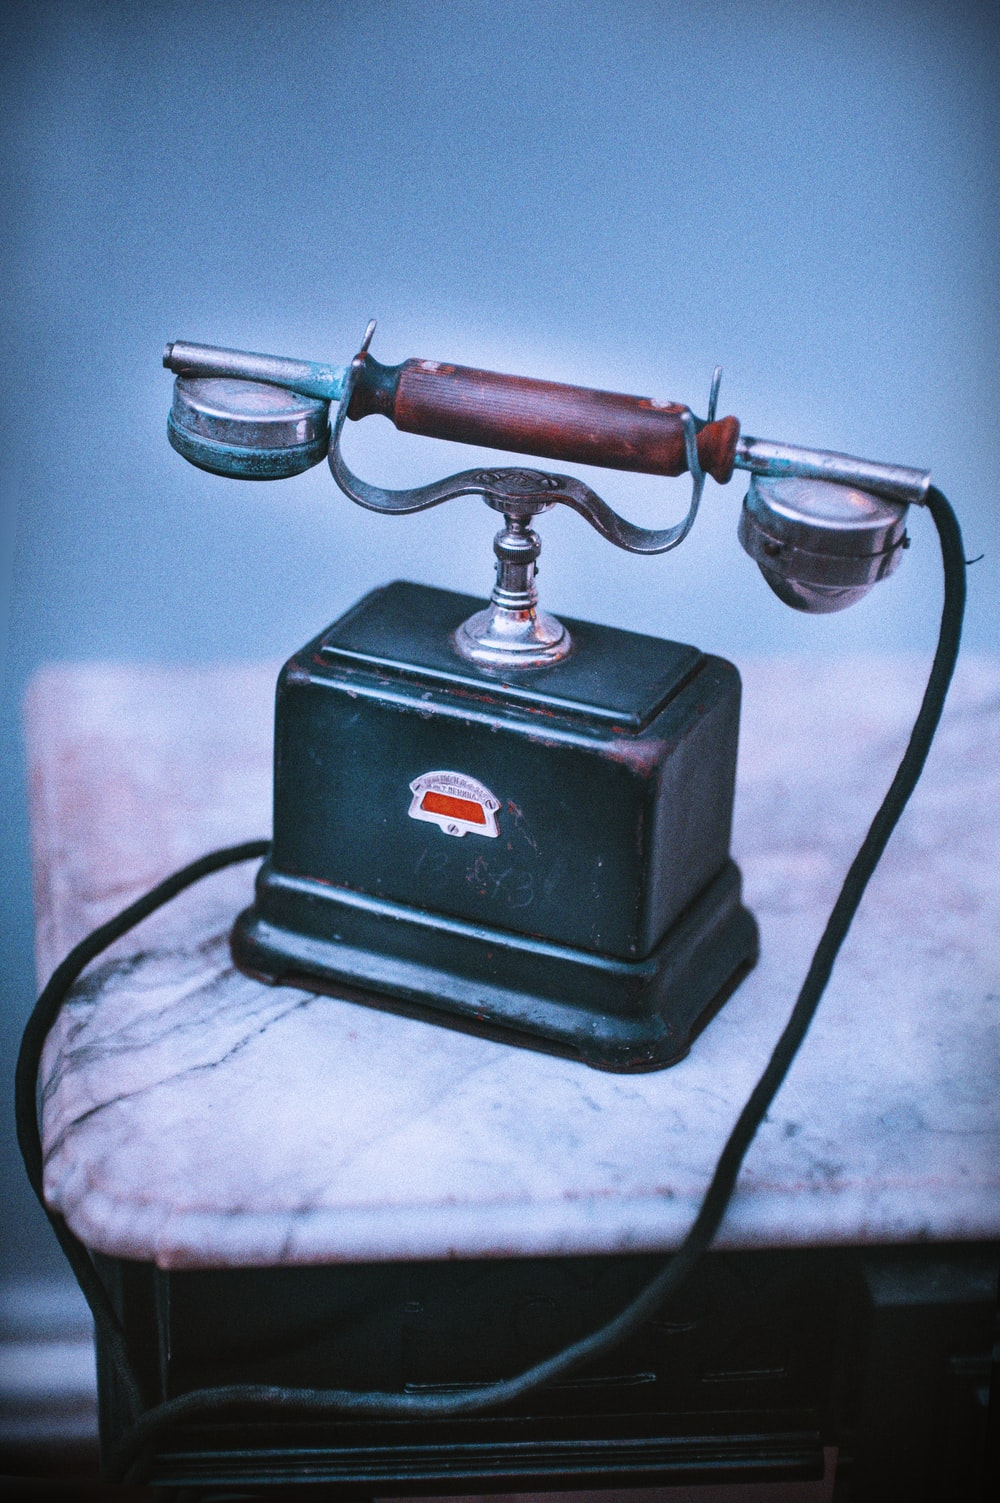 vintage blue and brown telephone on beige surface